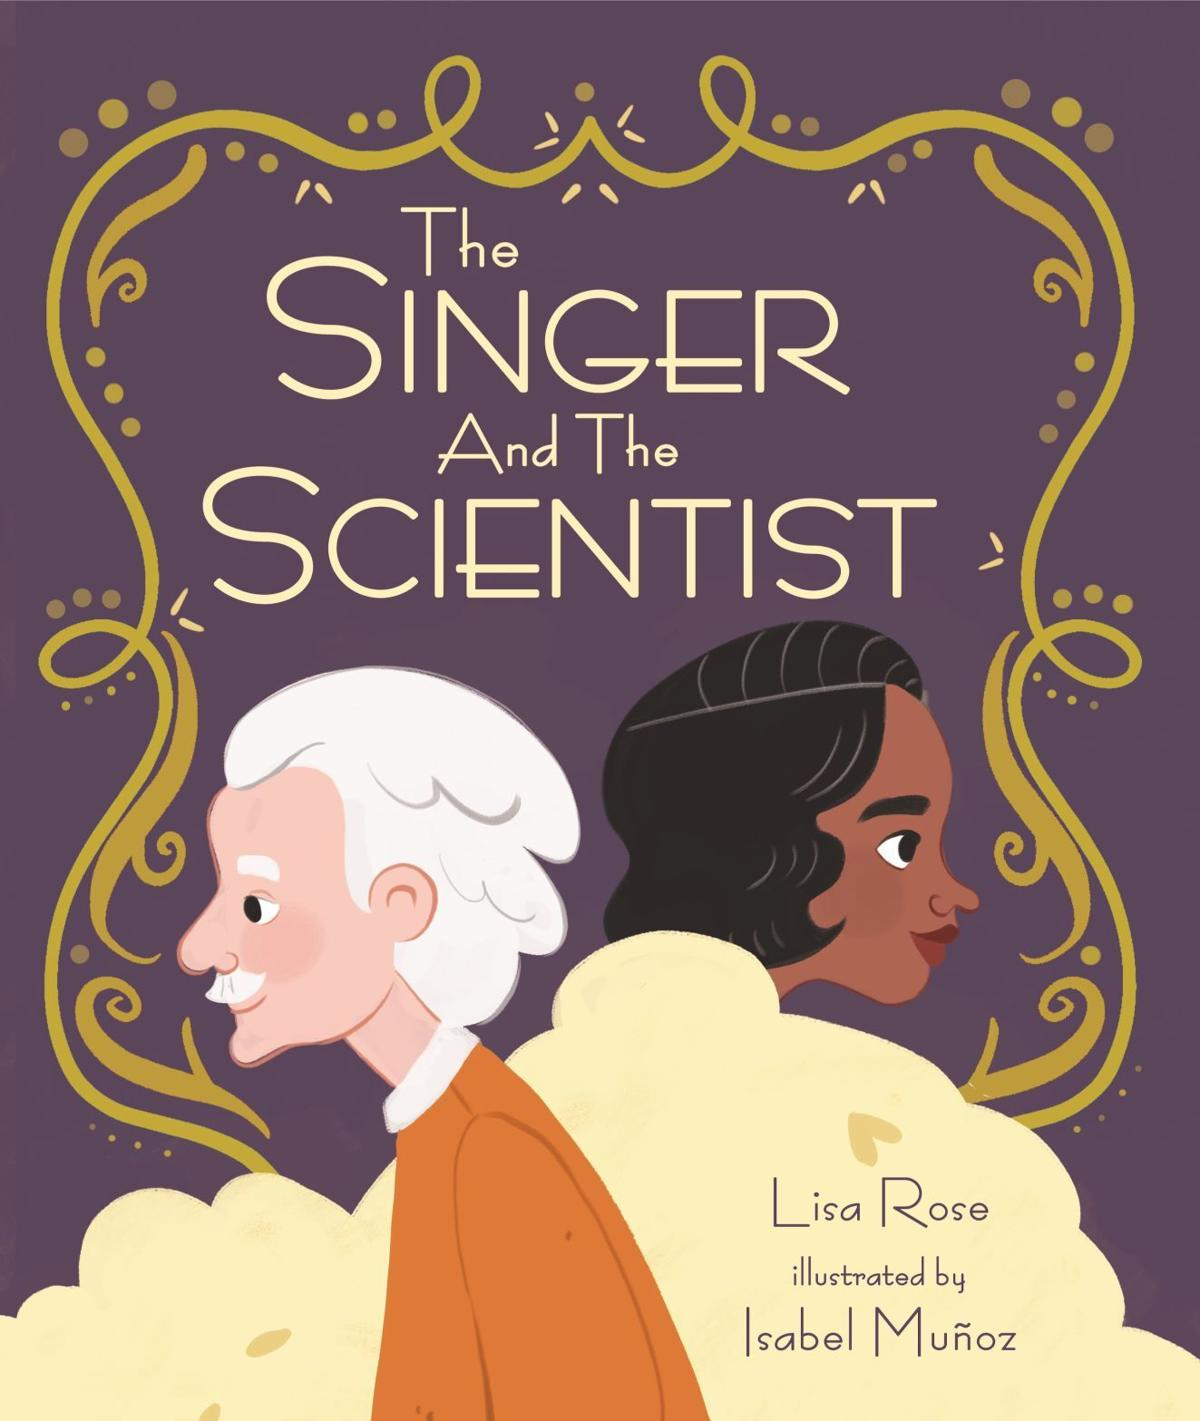 'The Singer and the Scientist'